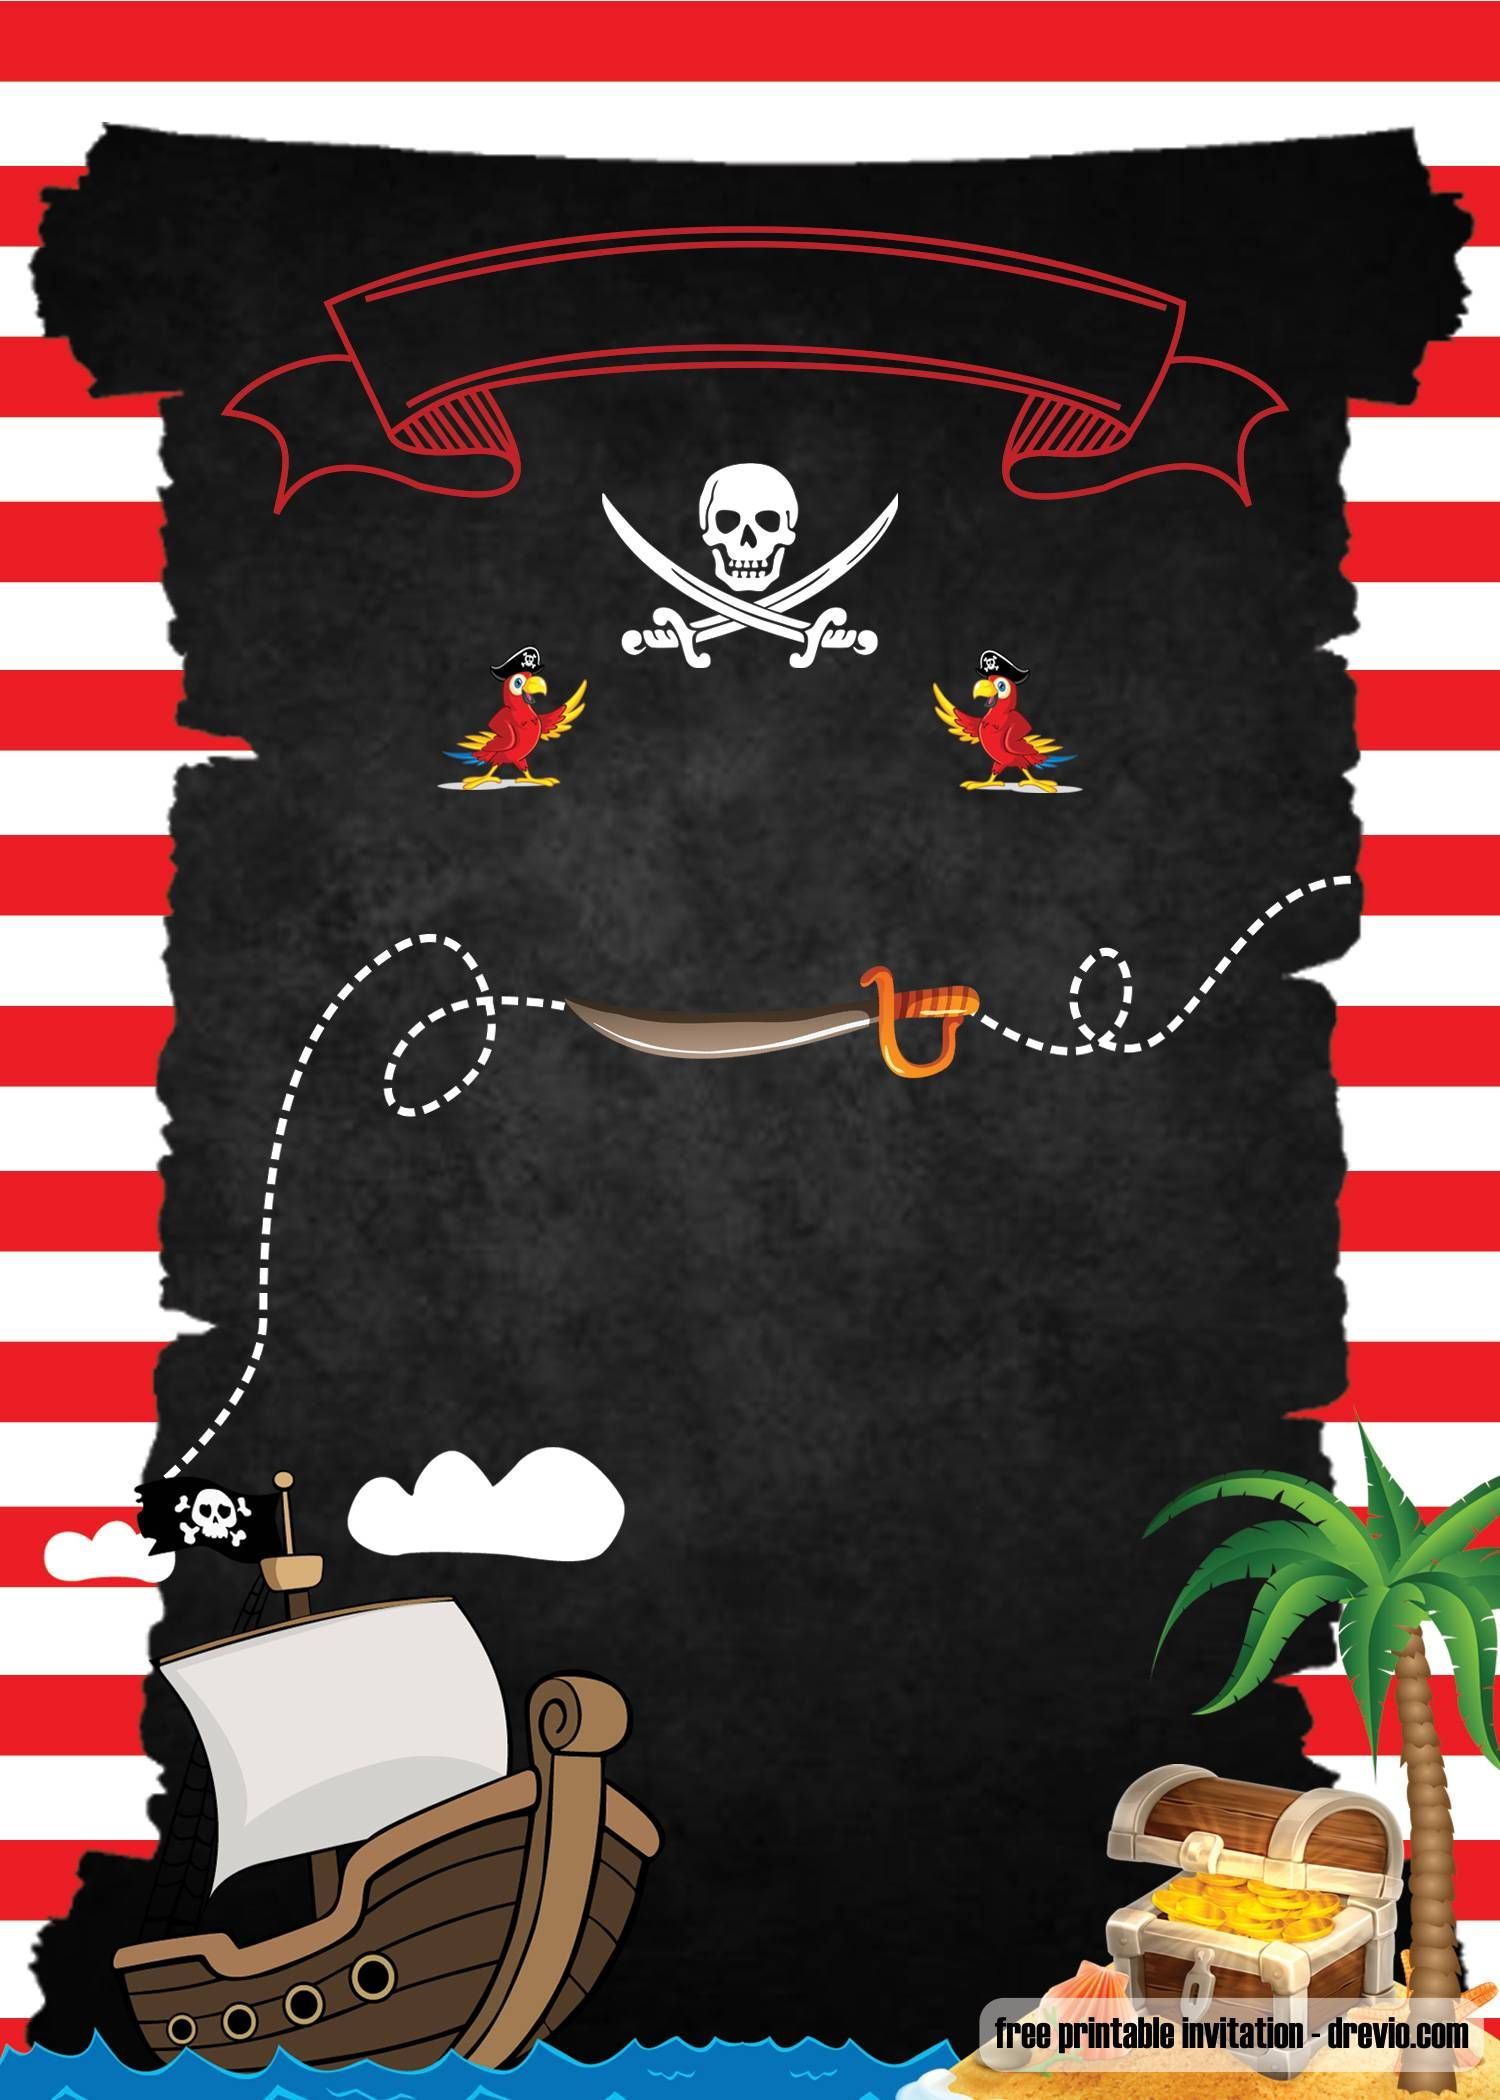 Free Printable Pirate Party Invitations Template Drevio Pirate Party Invitations Template Pirate Invitations Pirate Party Invitations Printable